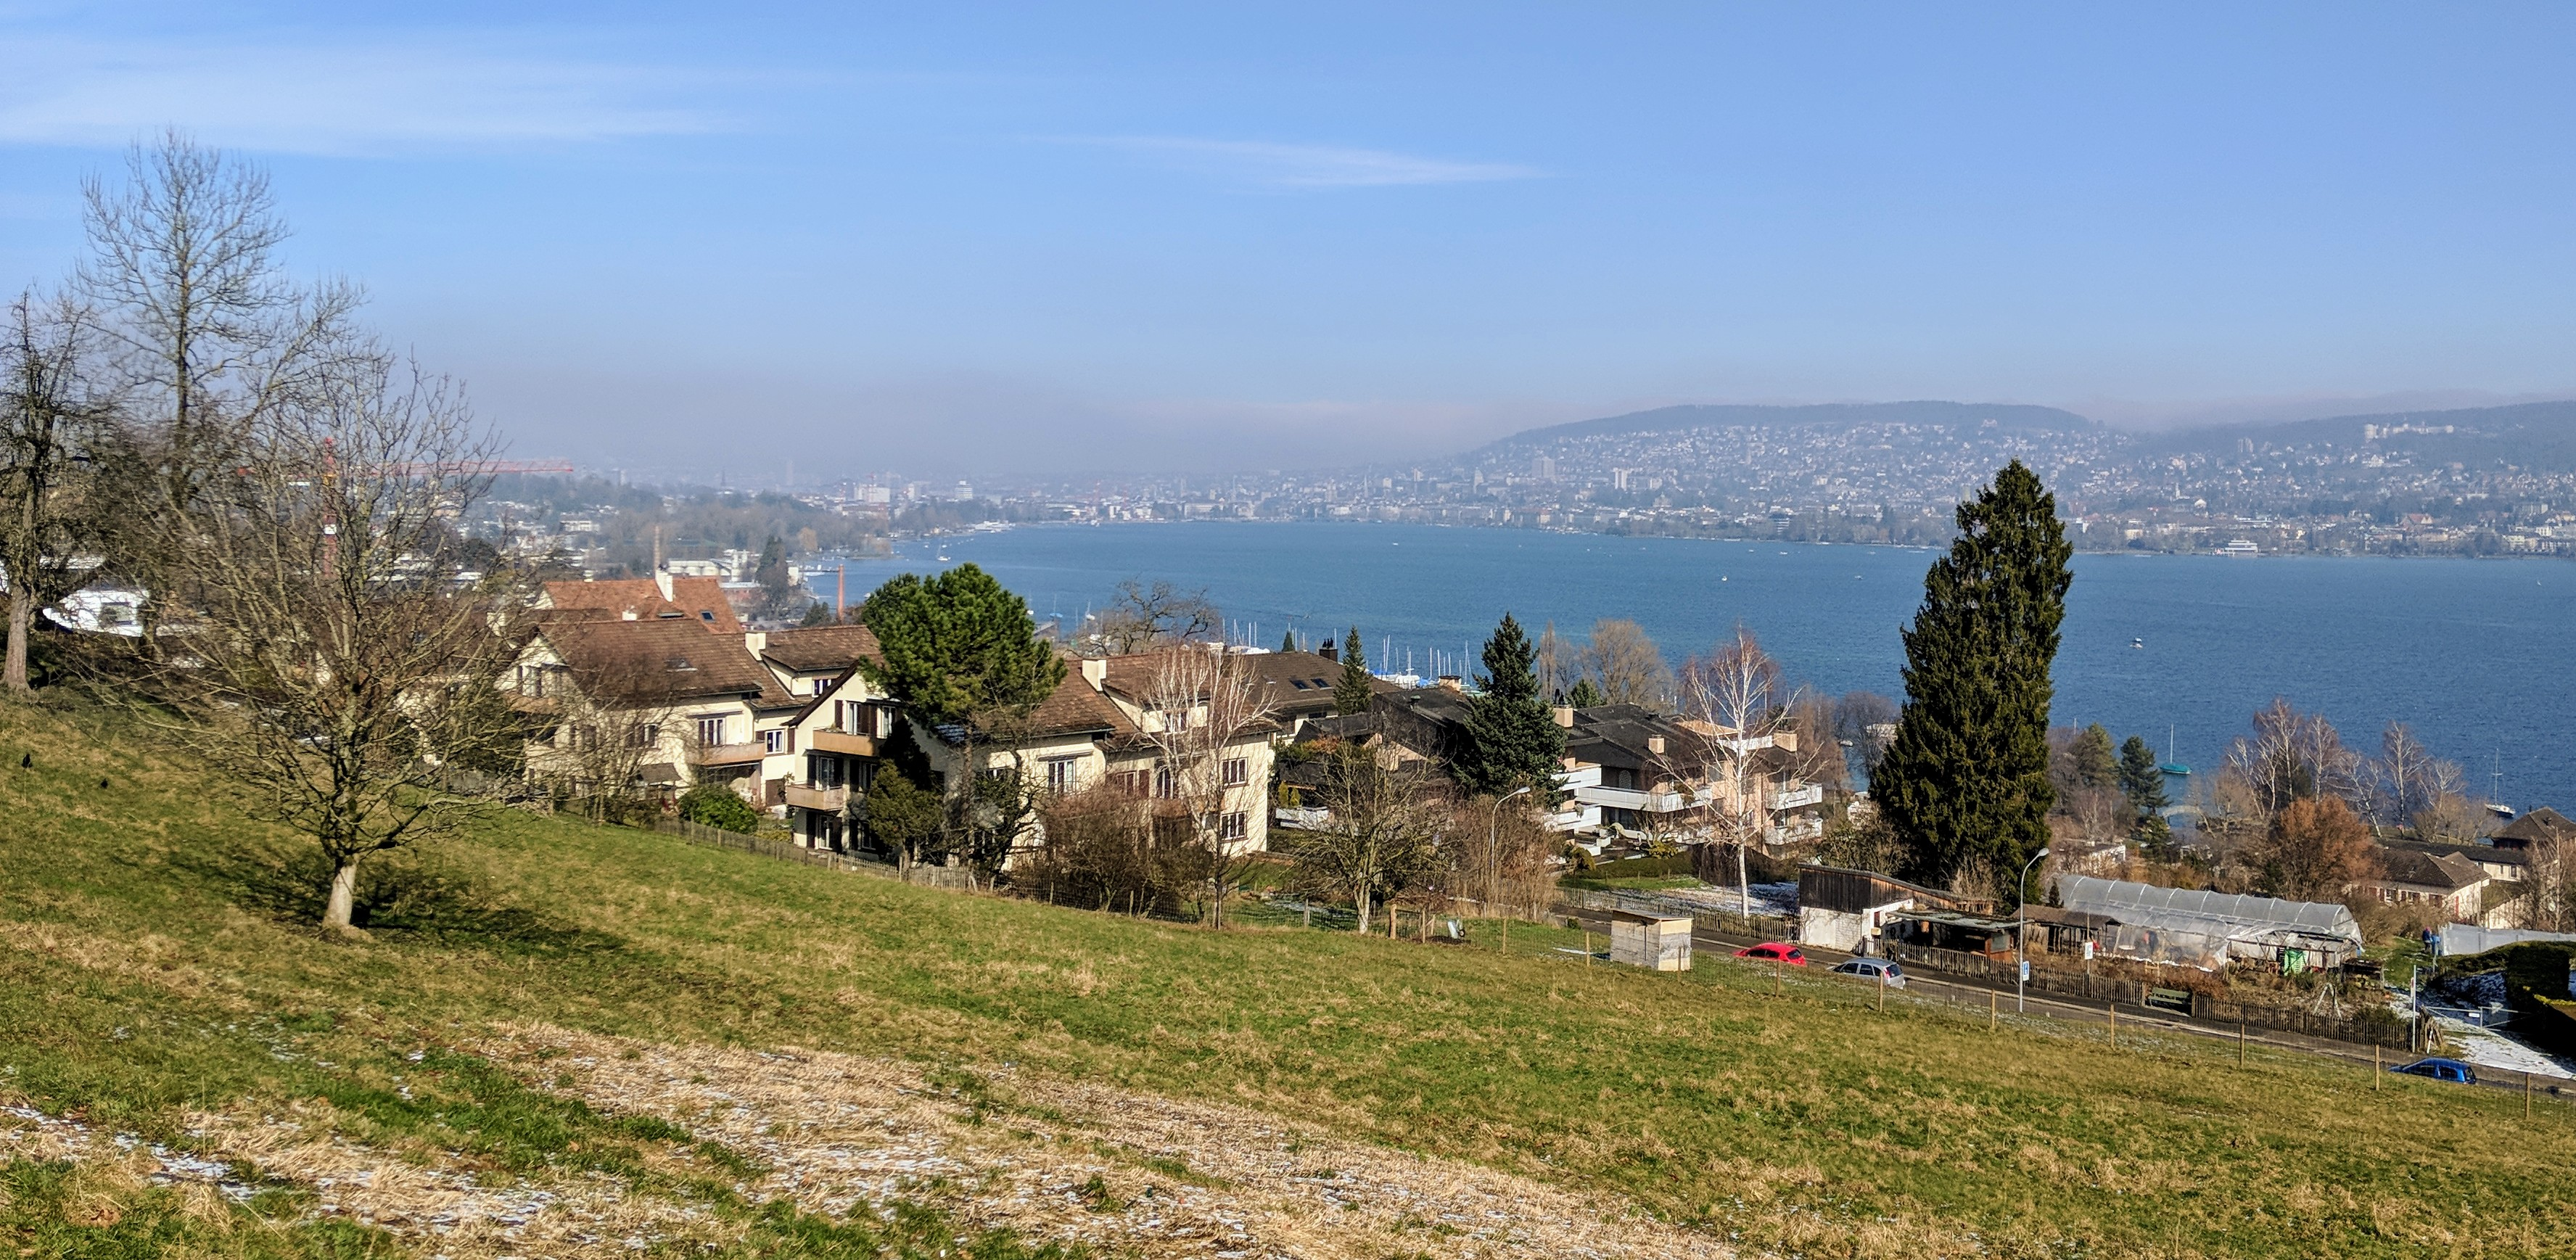 Running route in Zurich - View Lake Zurich